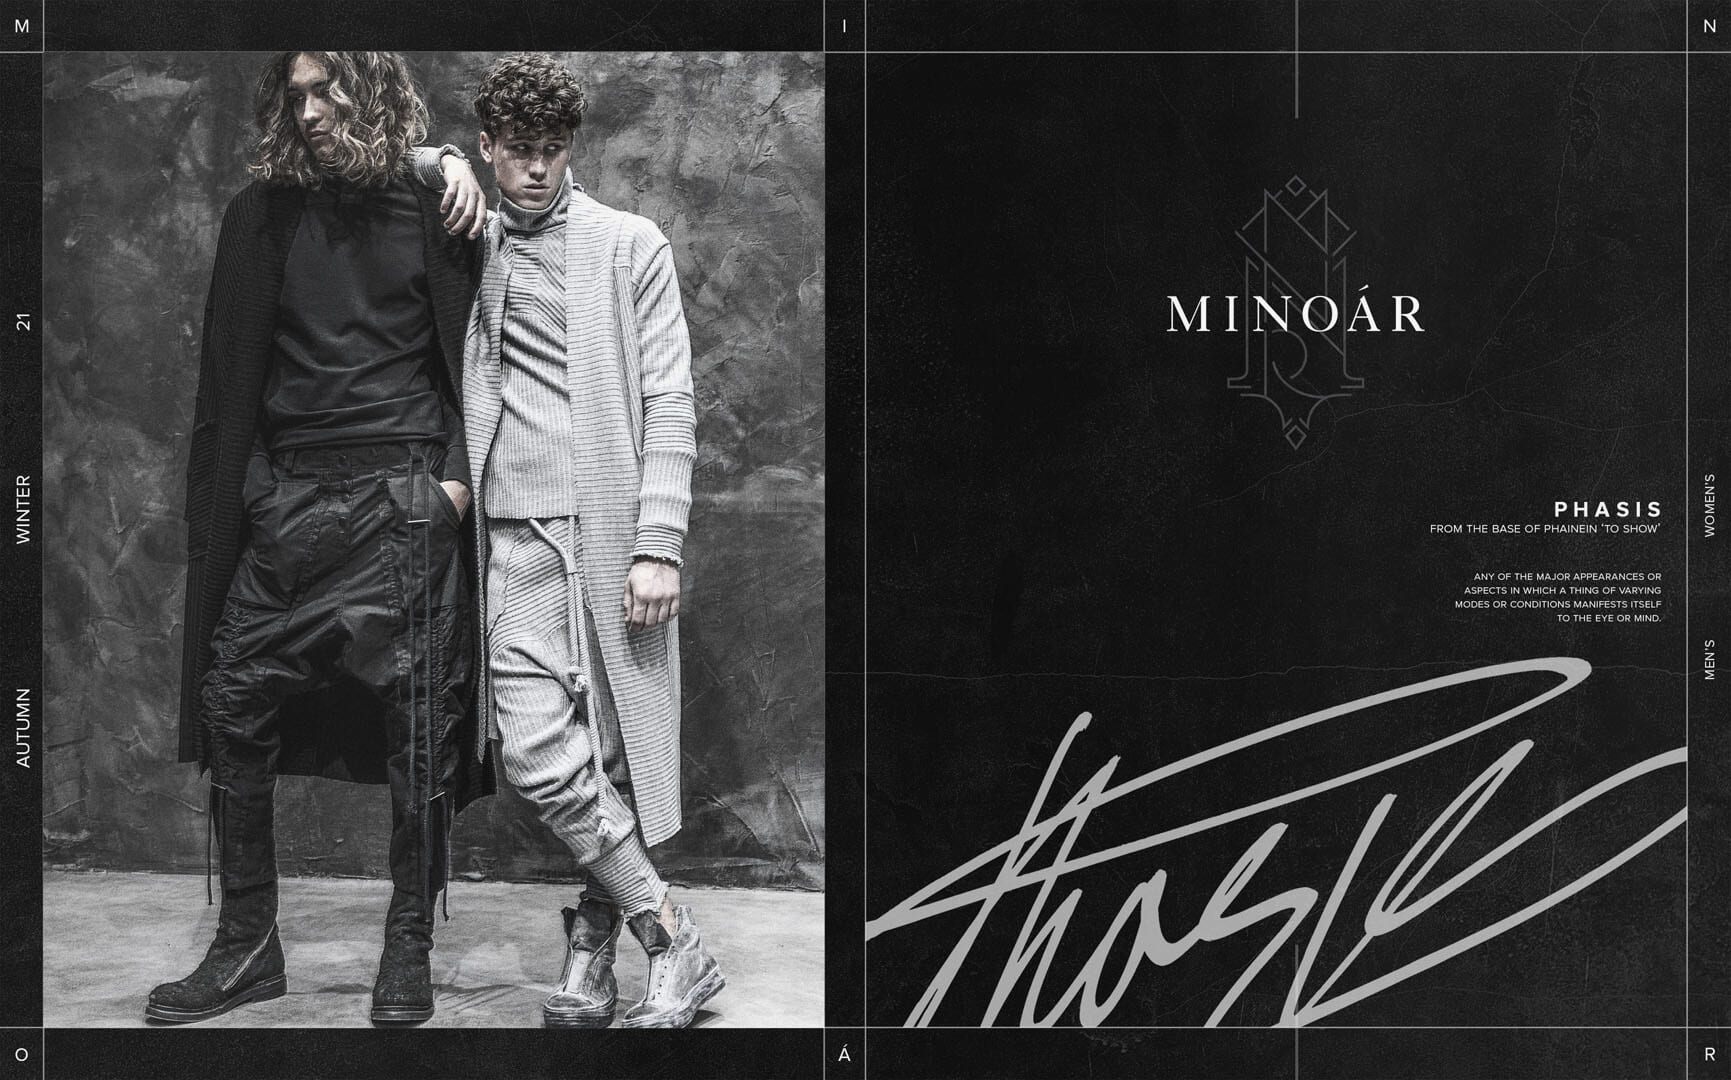 Minoár - For the one who does not belong